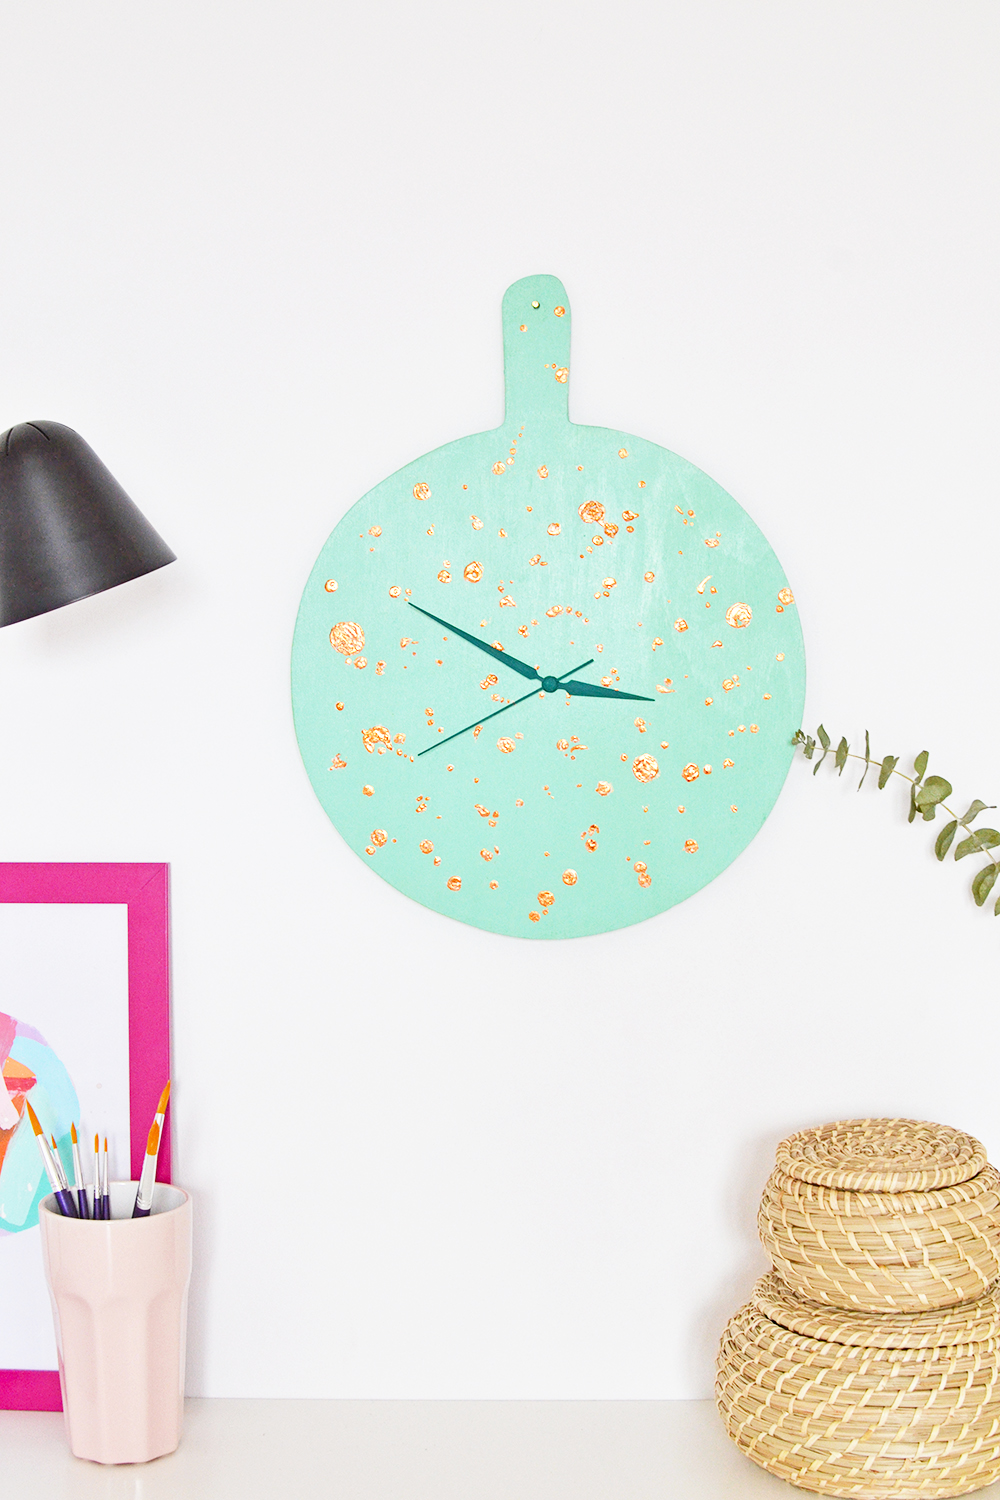 How to make a modern copper speckled clock almost inspired of Pantone's color of the year, 2017 by making a custom green shade yourself.